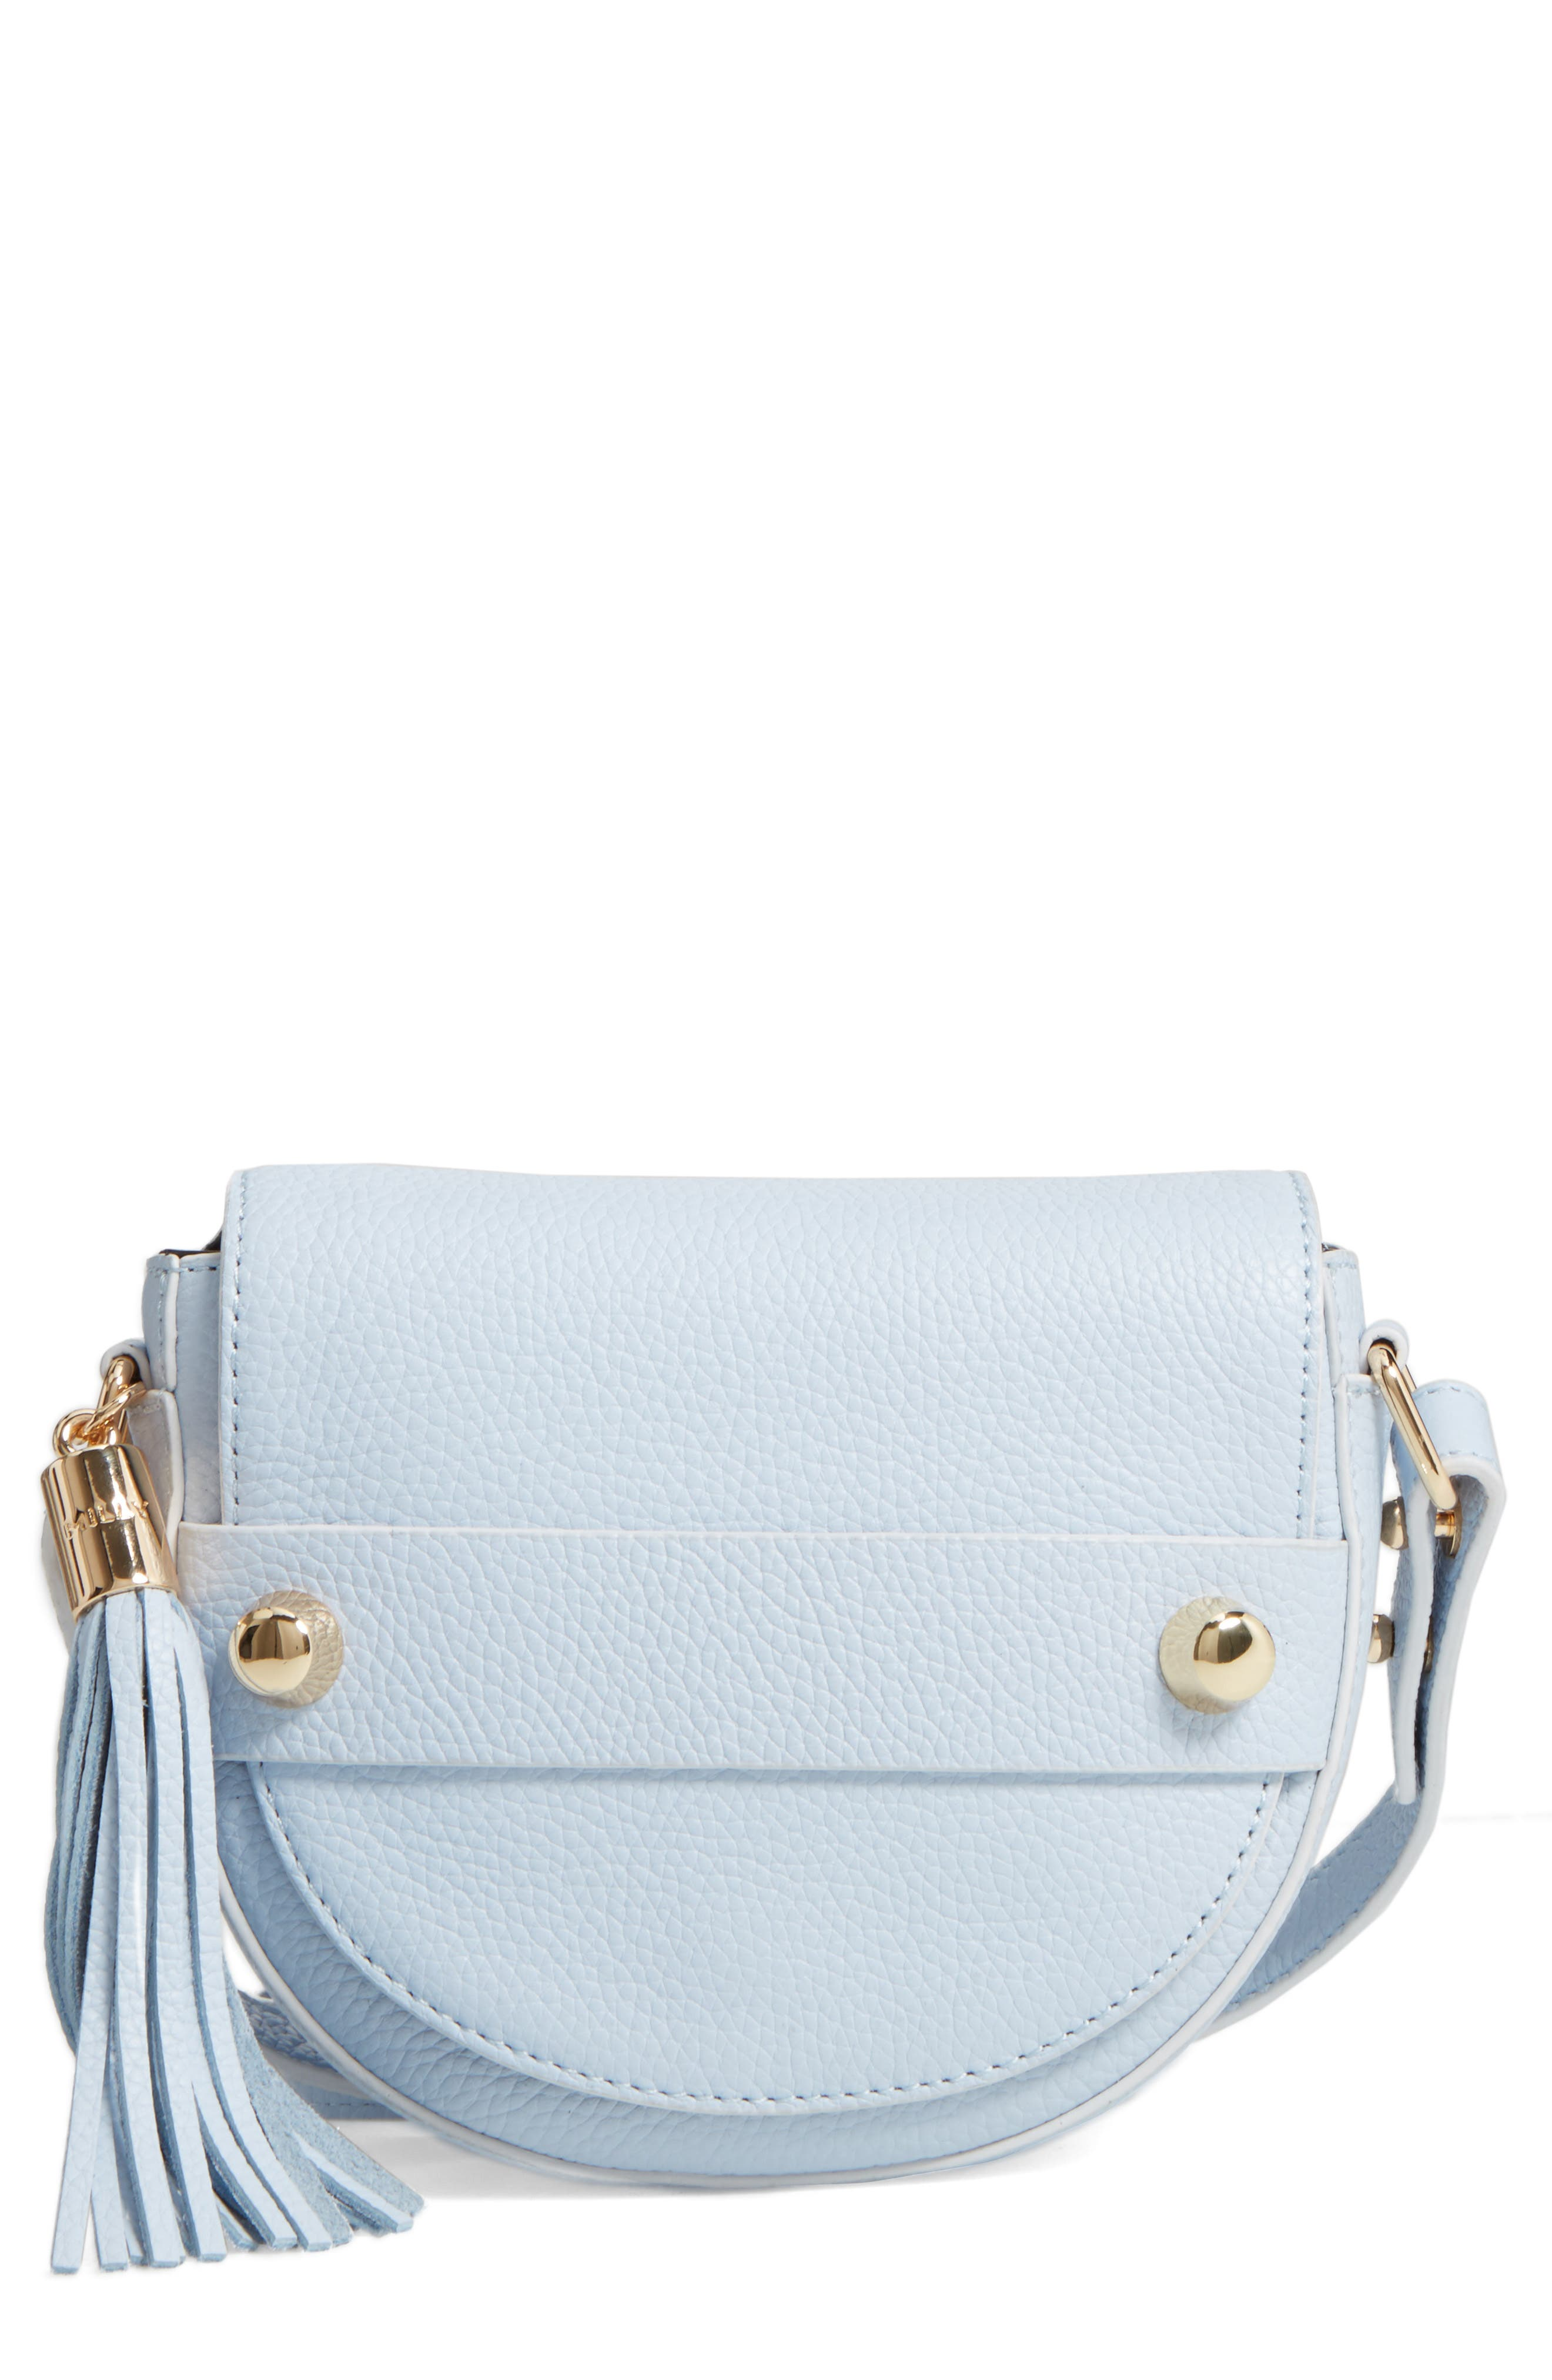 Milly Astor Leather Crossbody Saddle Bag